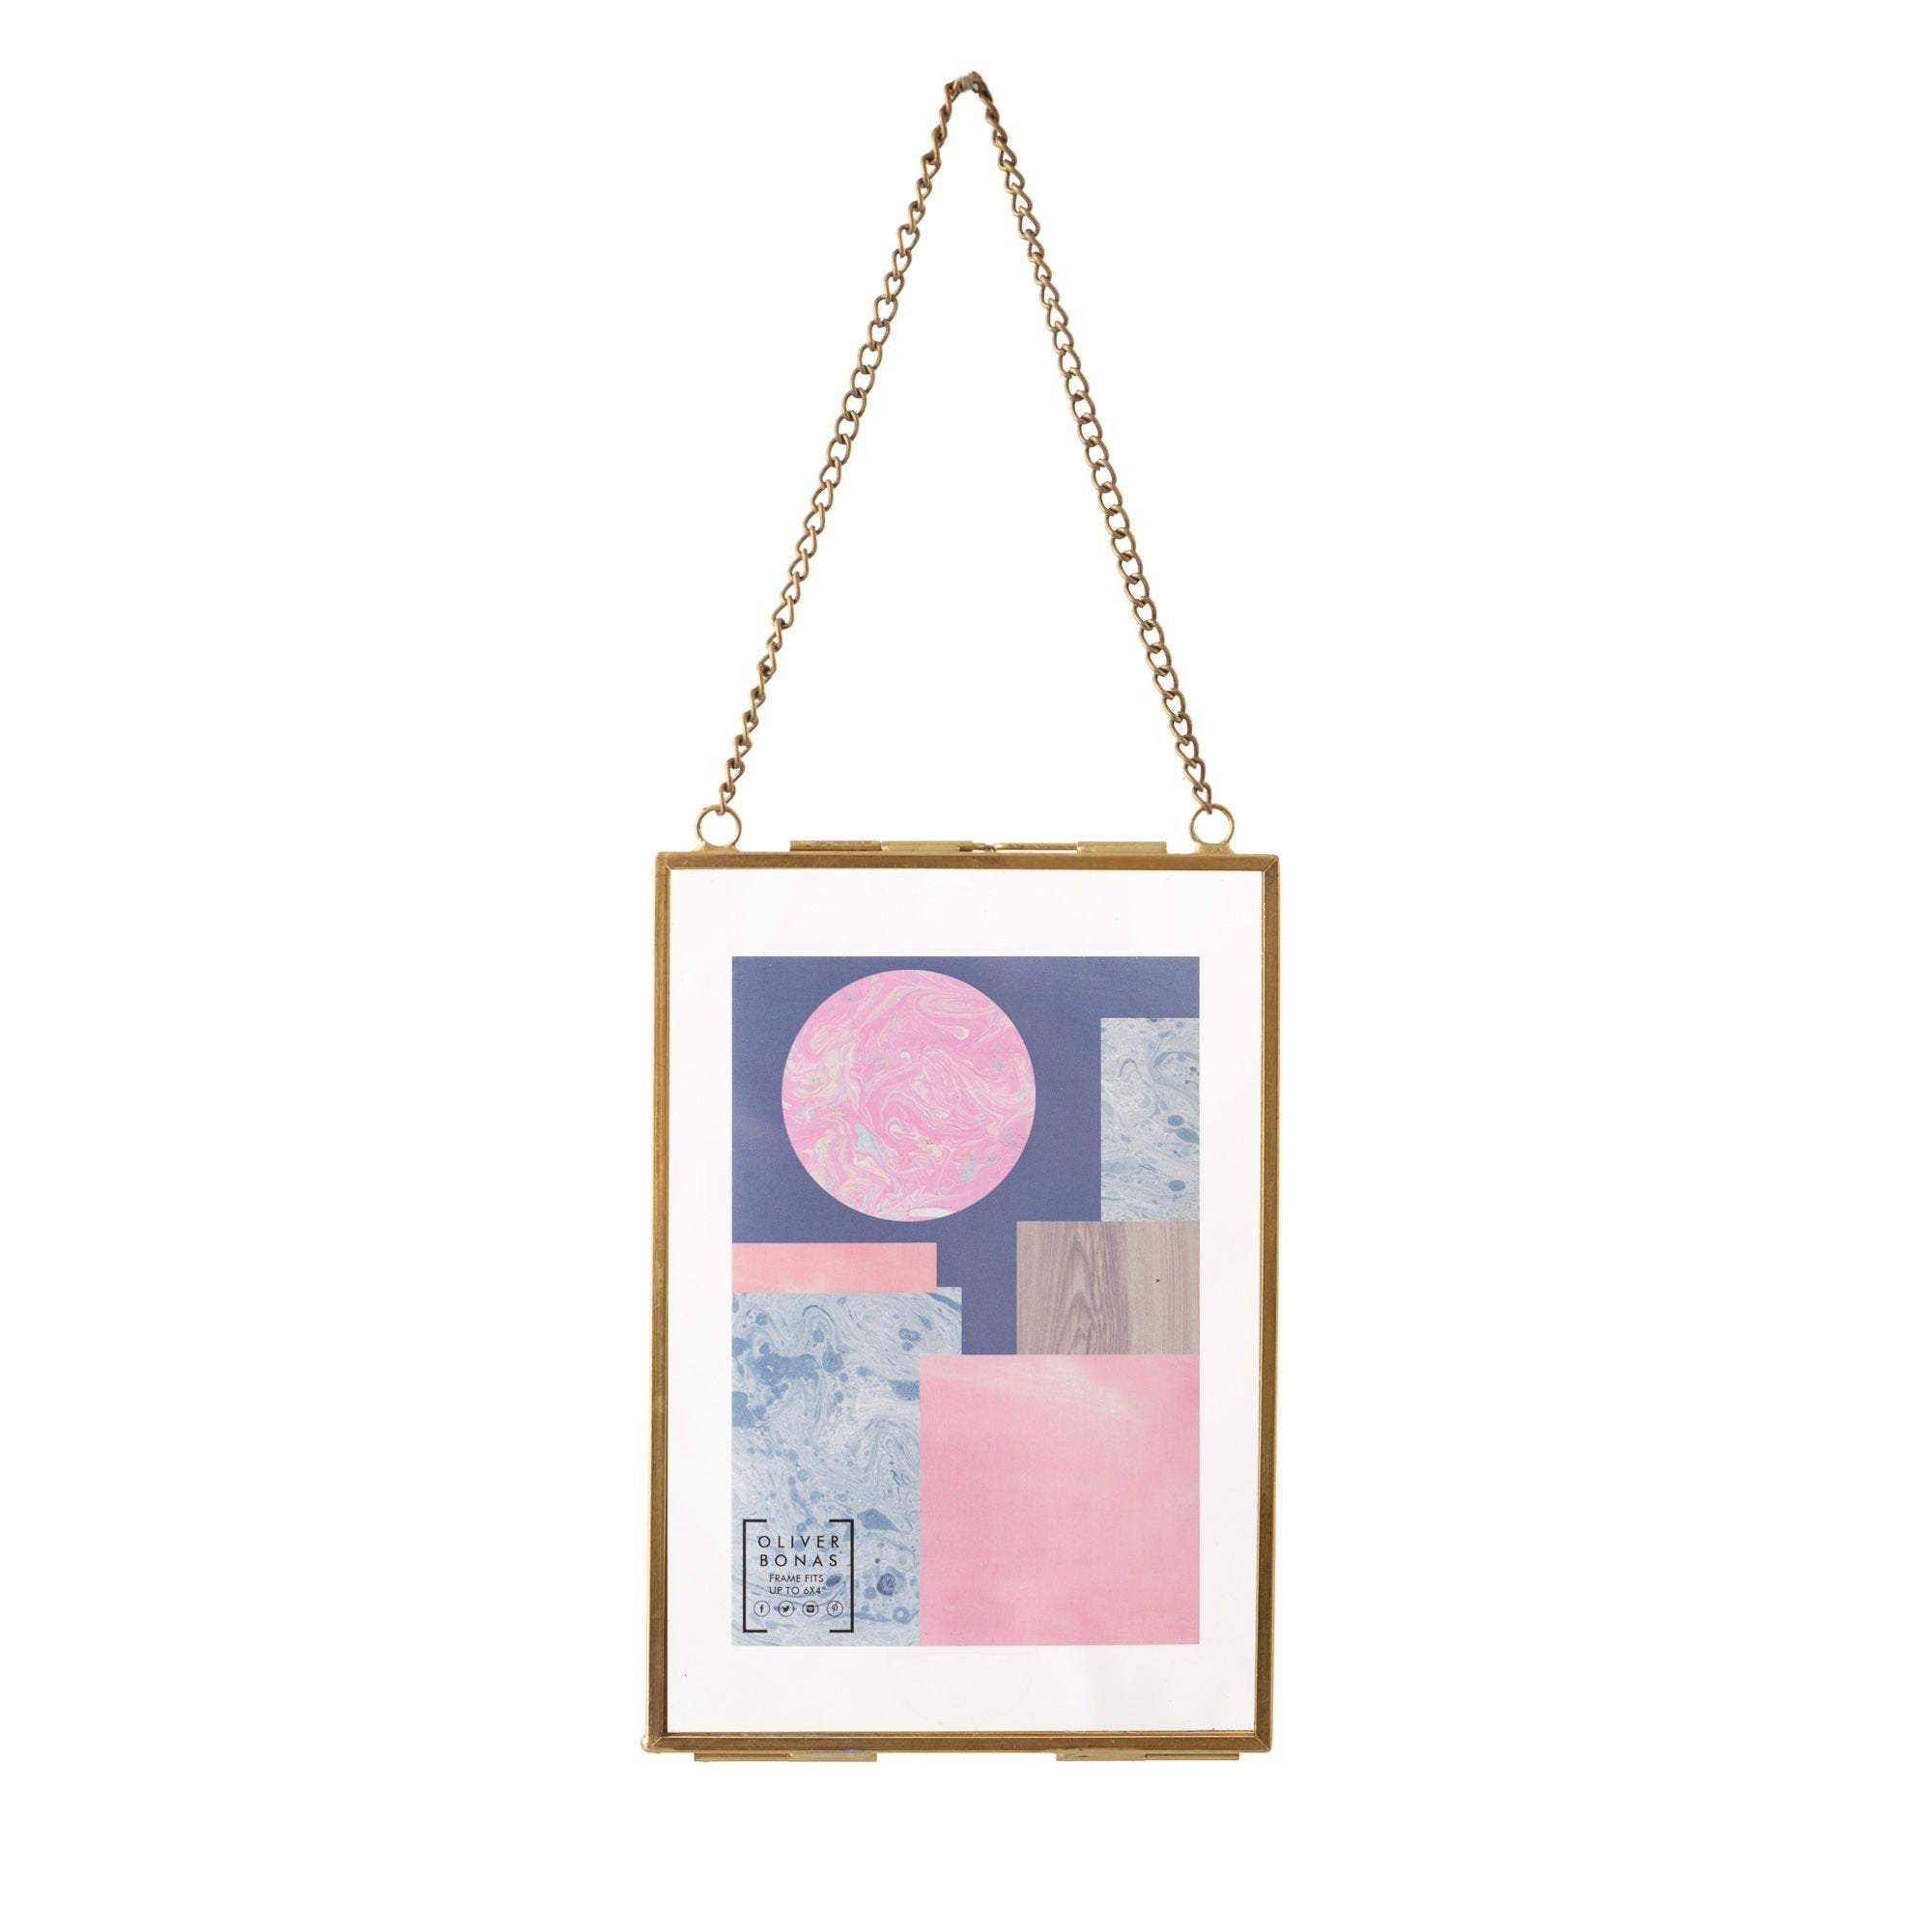 Personalized Glass & Brass Hanging Photo Frame 6*4""